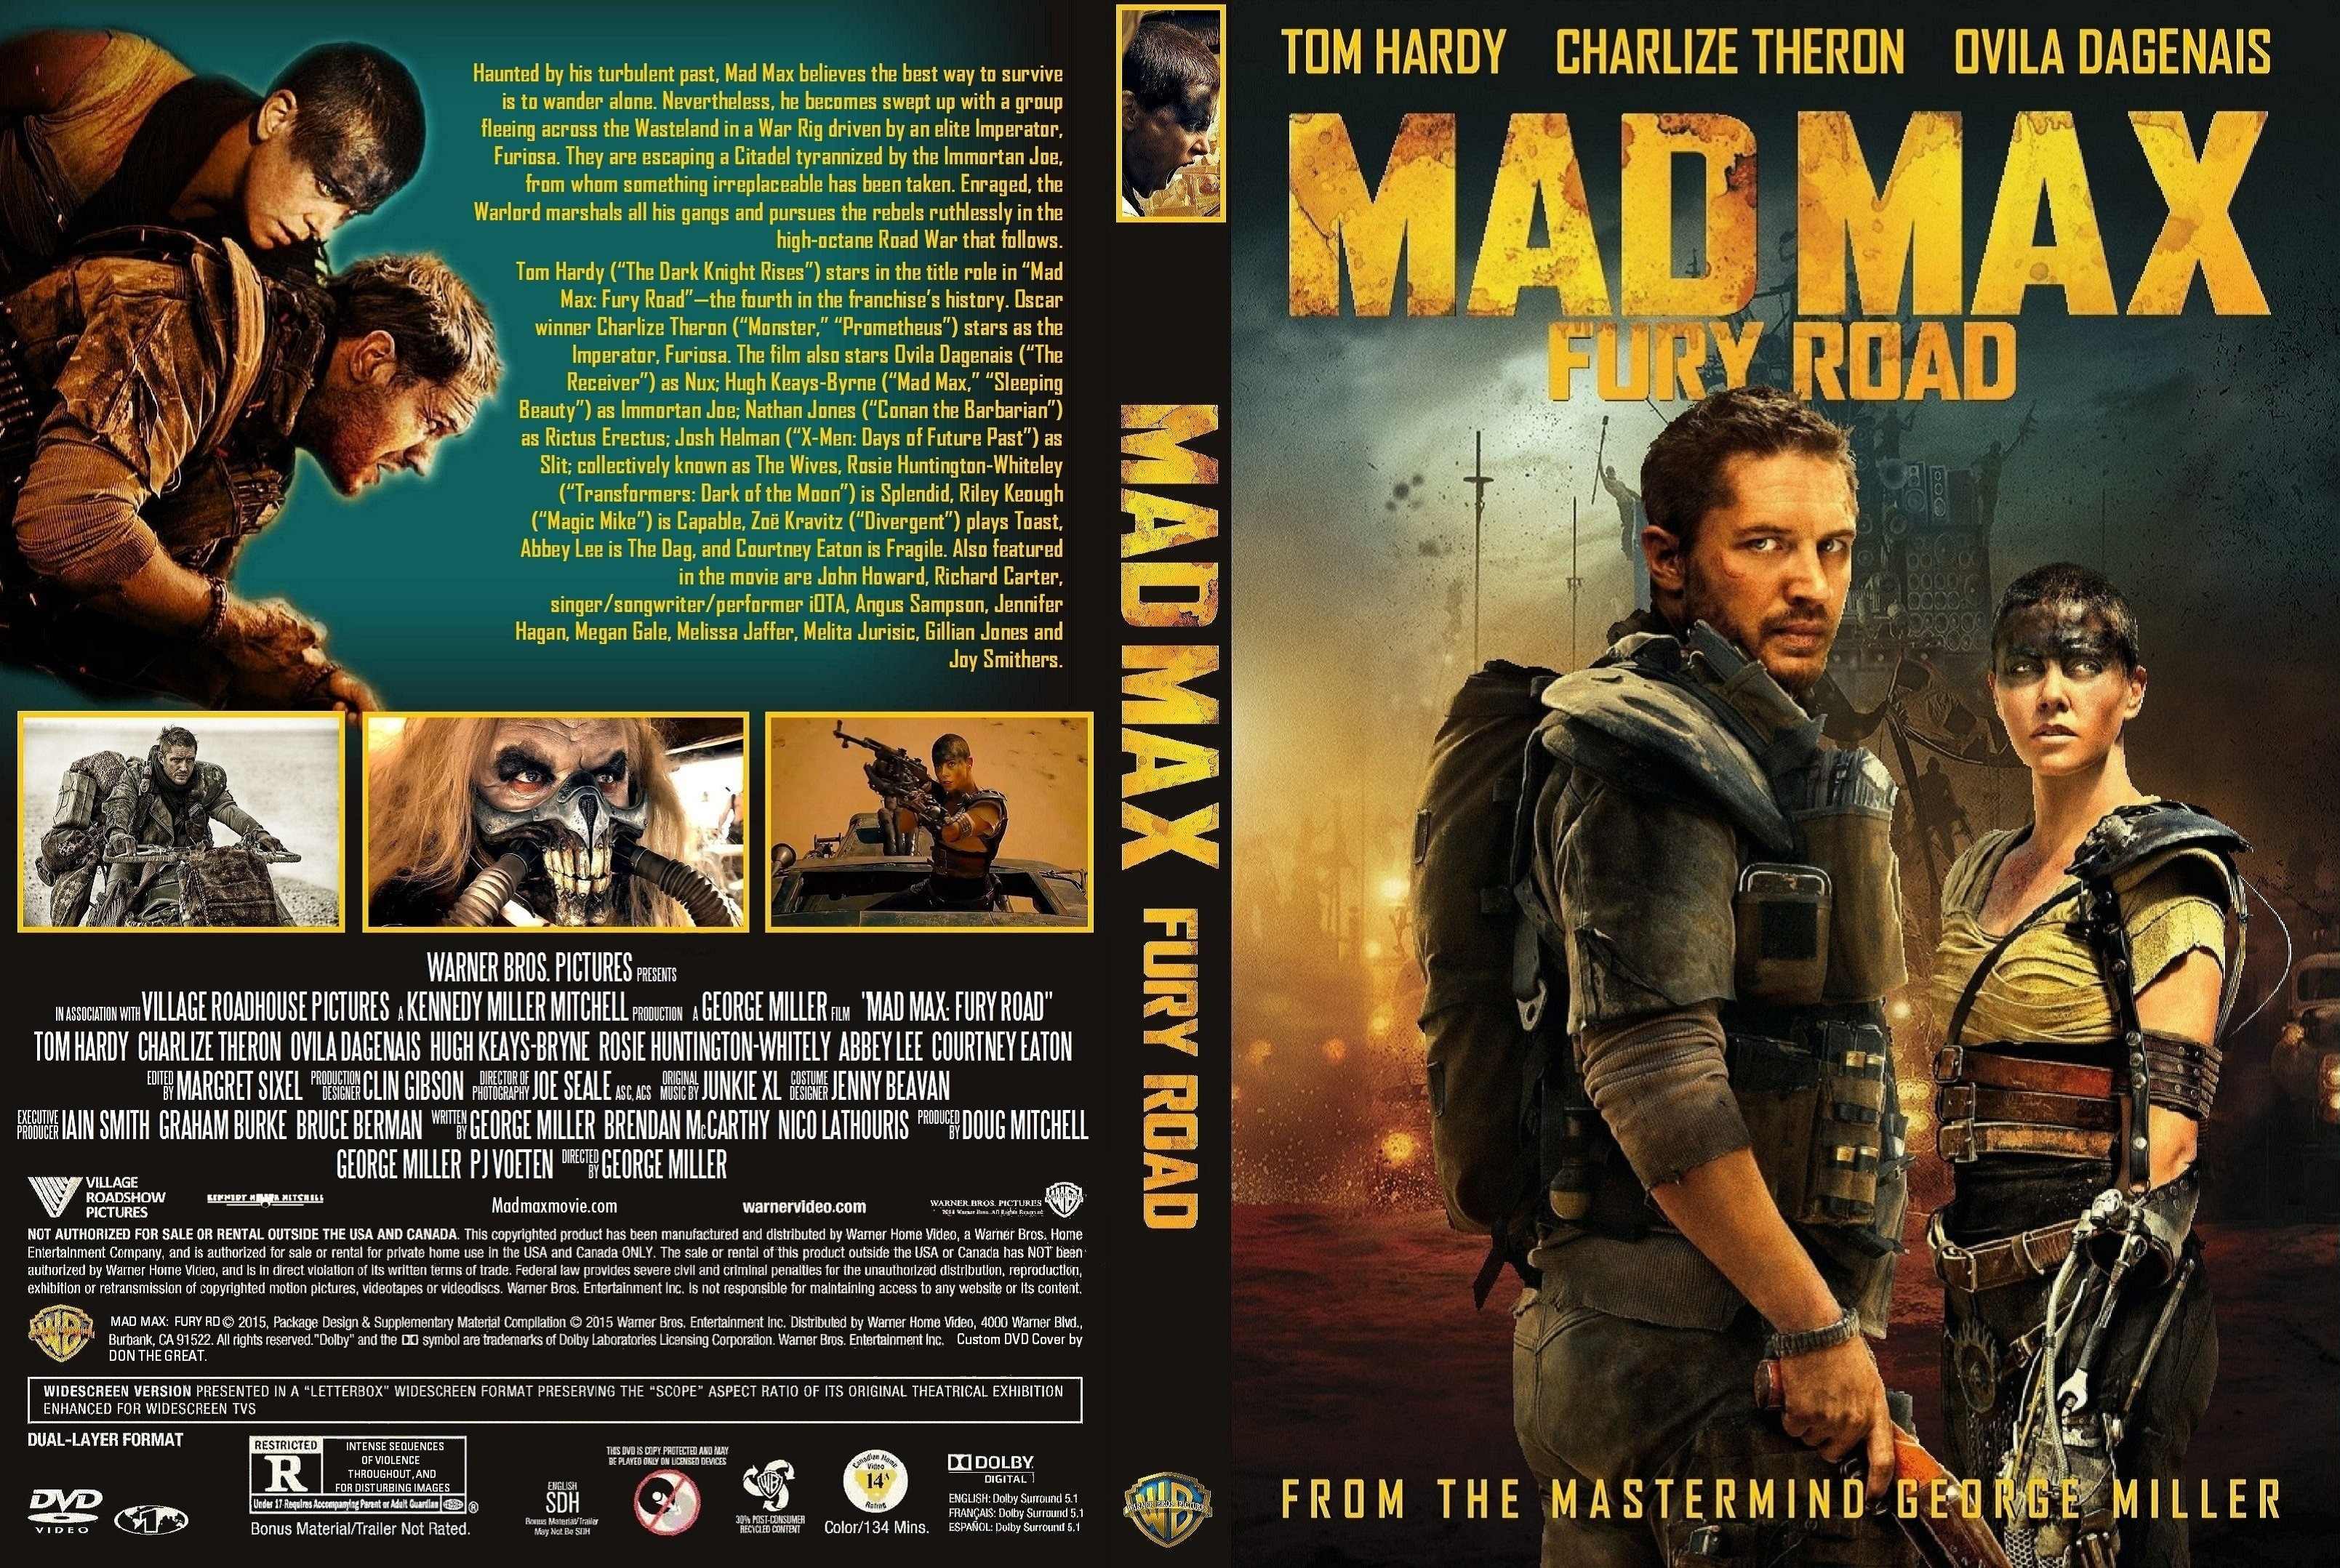 mad max fury road dvd cover vincent laforet short film